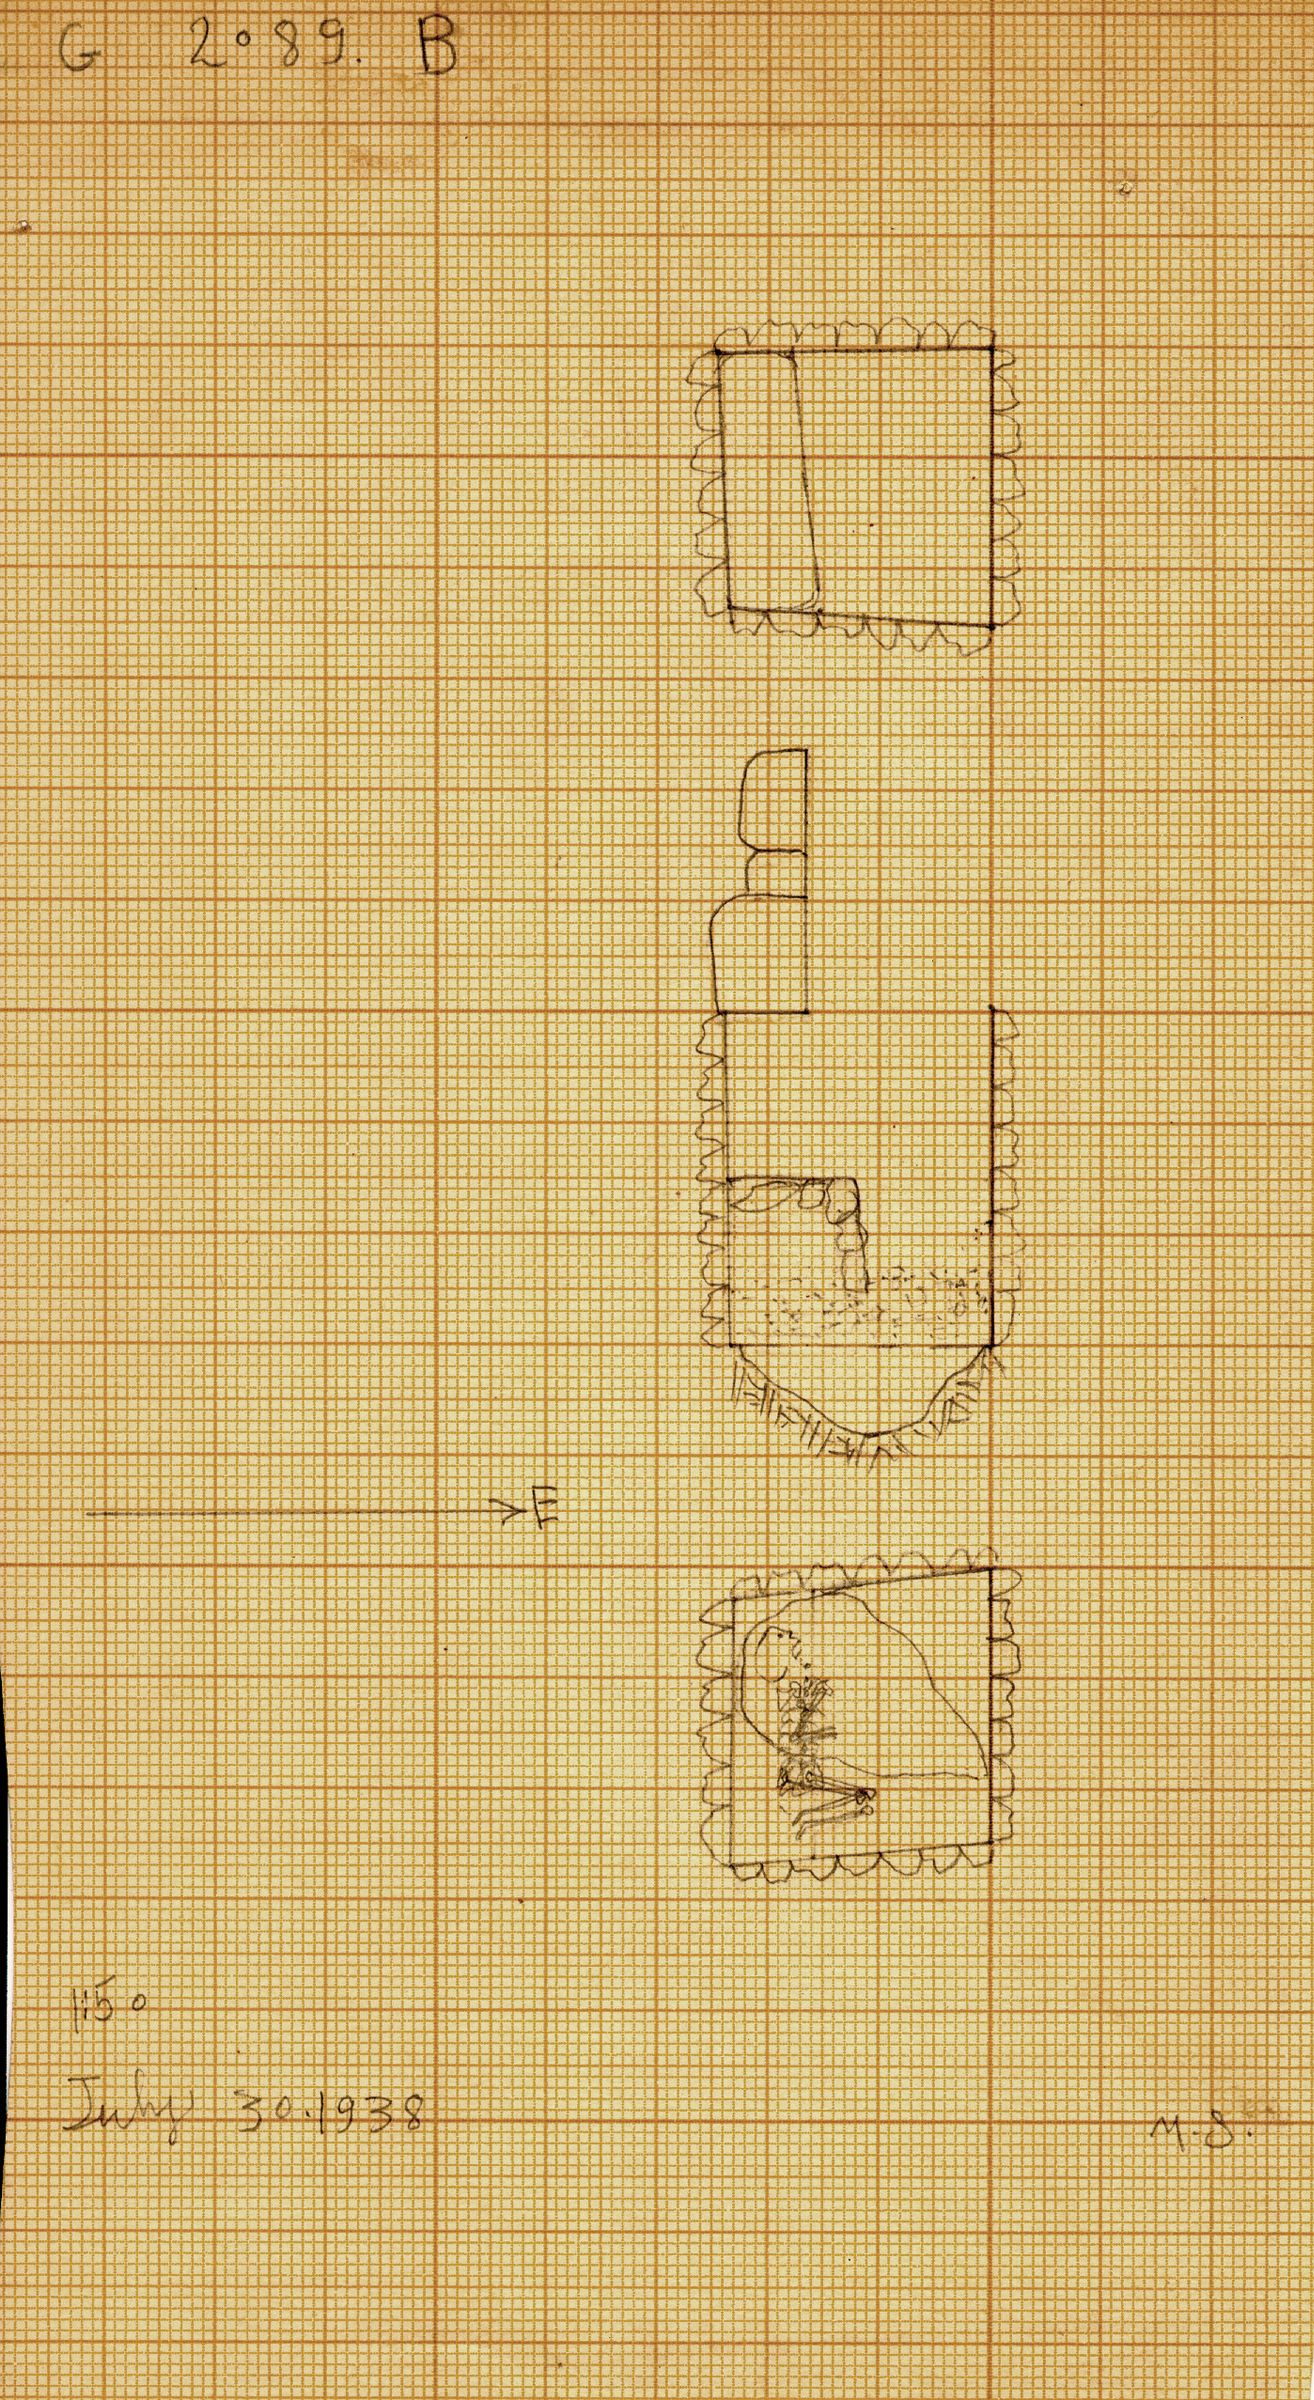 Maps and plans: G 2089, Shaft B